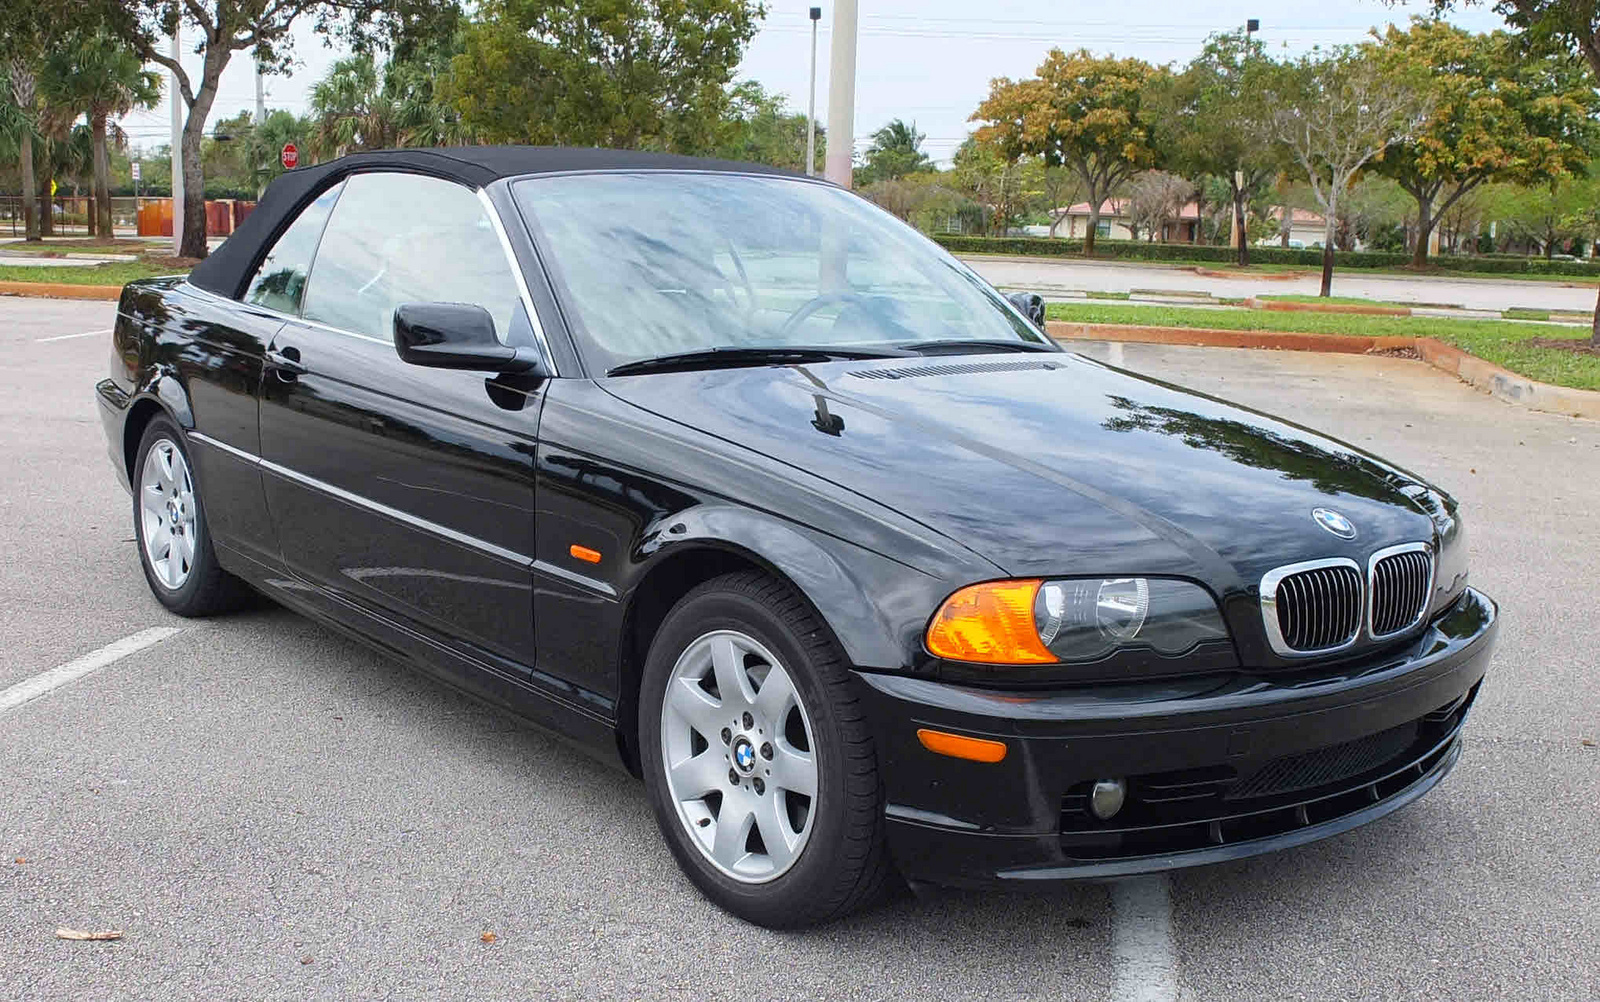 Bmw Z4 1997.1997 BMW Z3 Image #11. BMW Z4 2003: Review ...